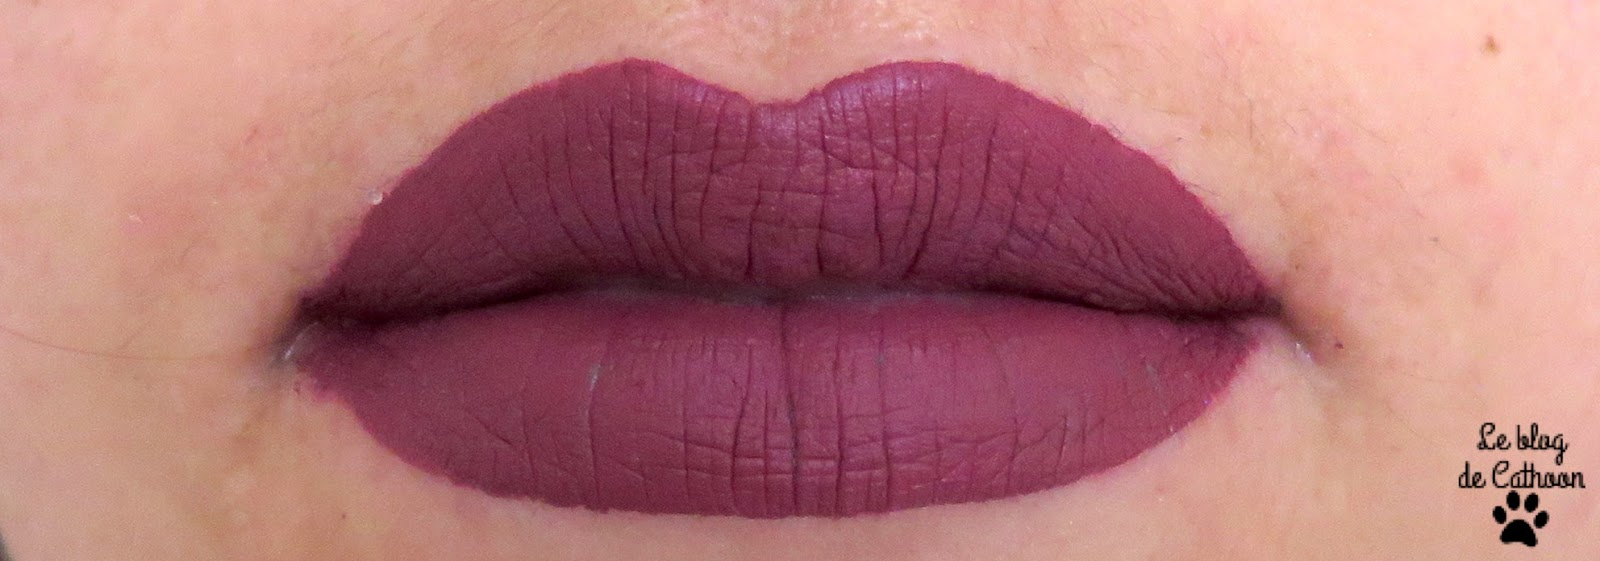 Longstay Liquid Matte Lisptick - 05 Sorbet Cassis - Golden Rose